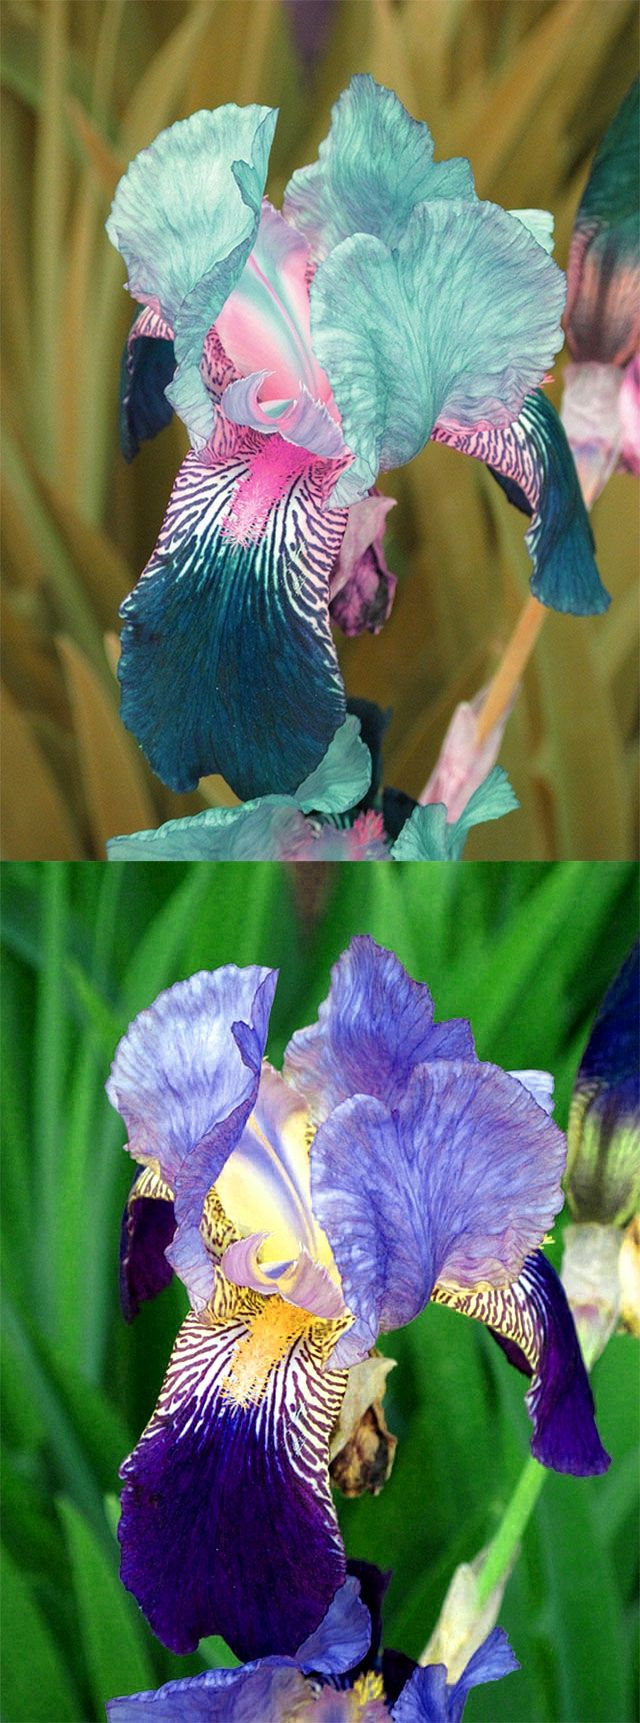 Pin On Photoshoped Viral Plants And Fungus